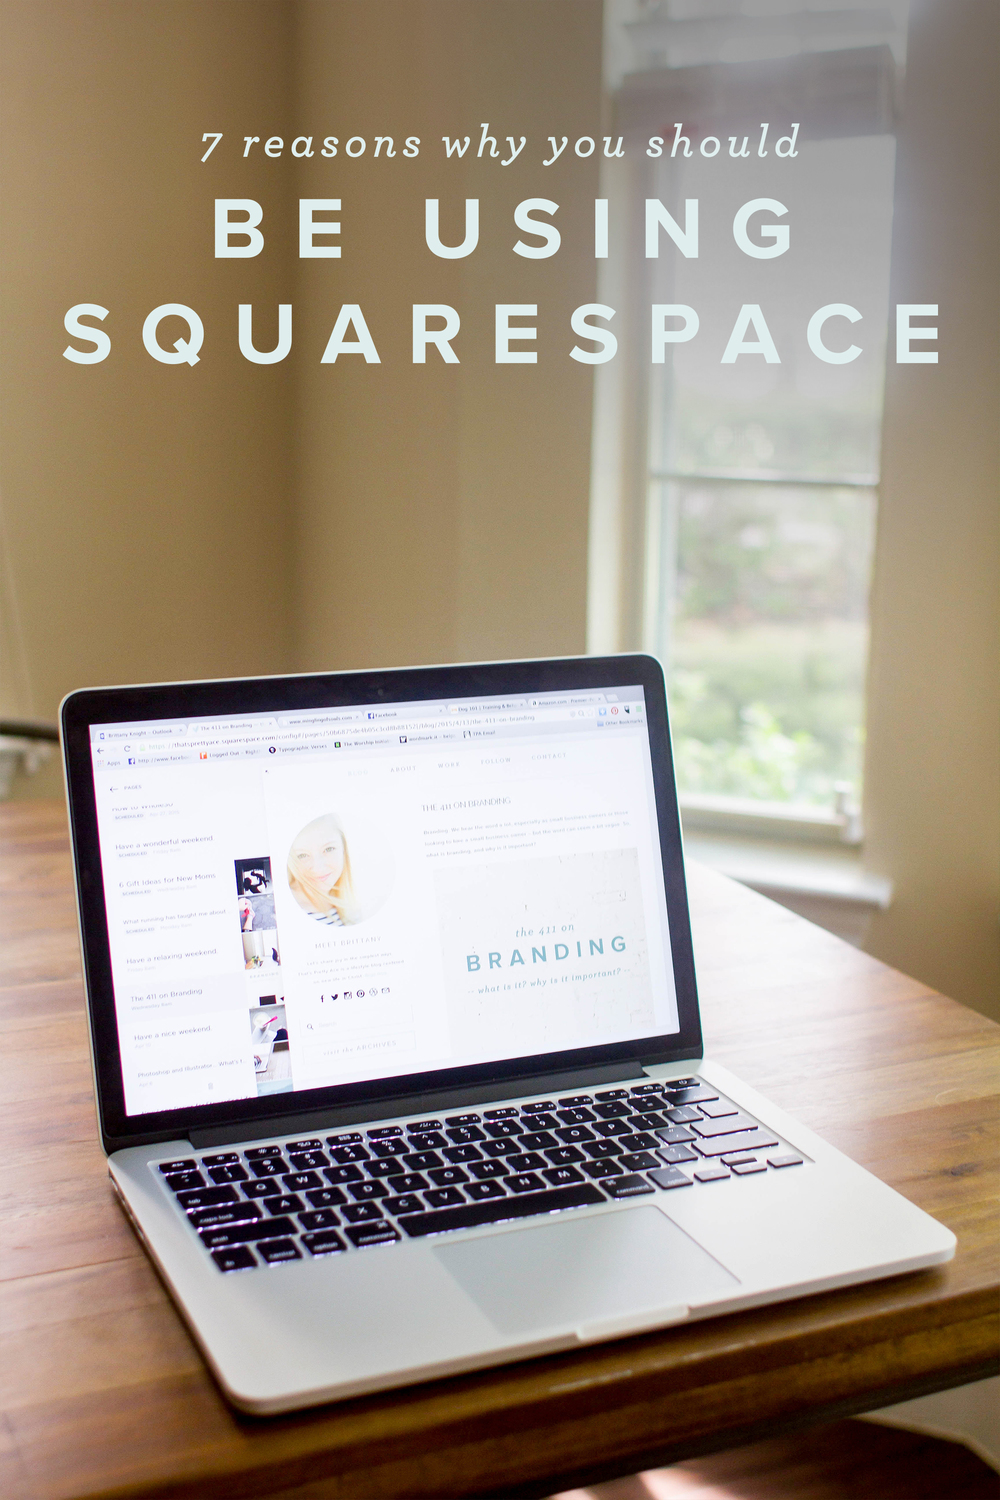 7 reasons why you should be using Squarespace - that's pretty ace